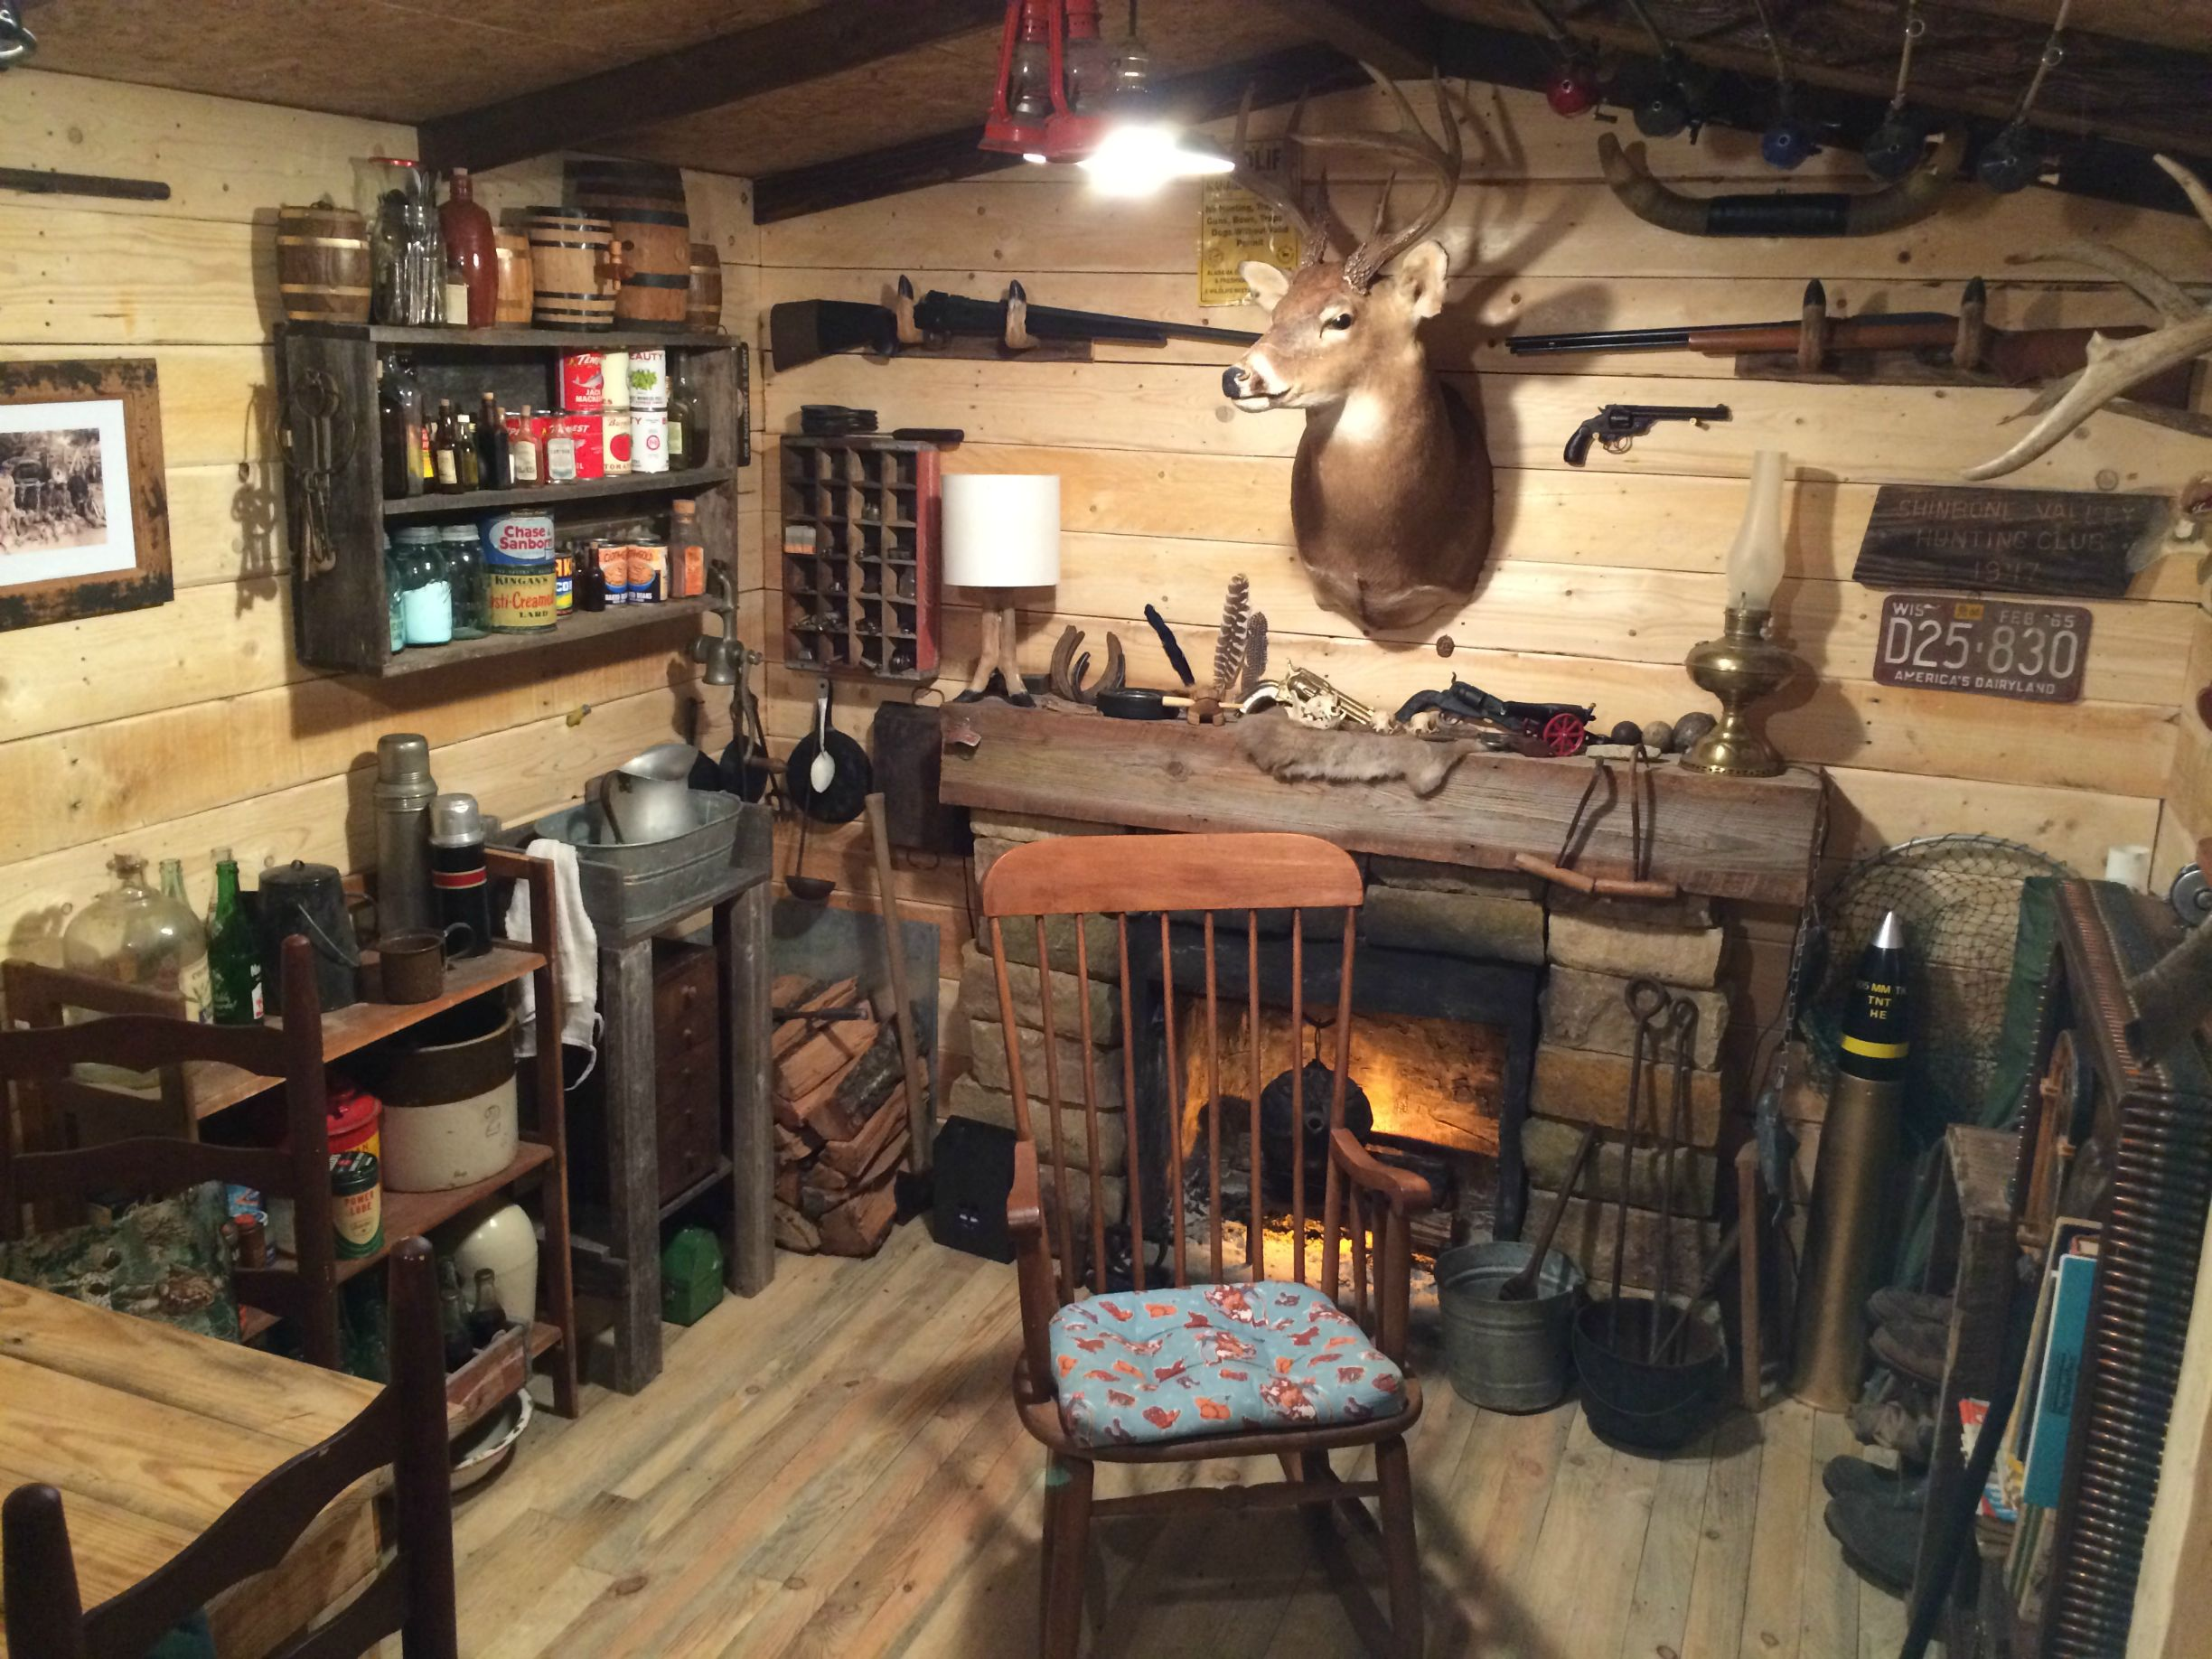 Garage Conversion Man Cave This Guy Built The Coolest Man Cave For Only 107 You D Think He